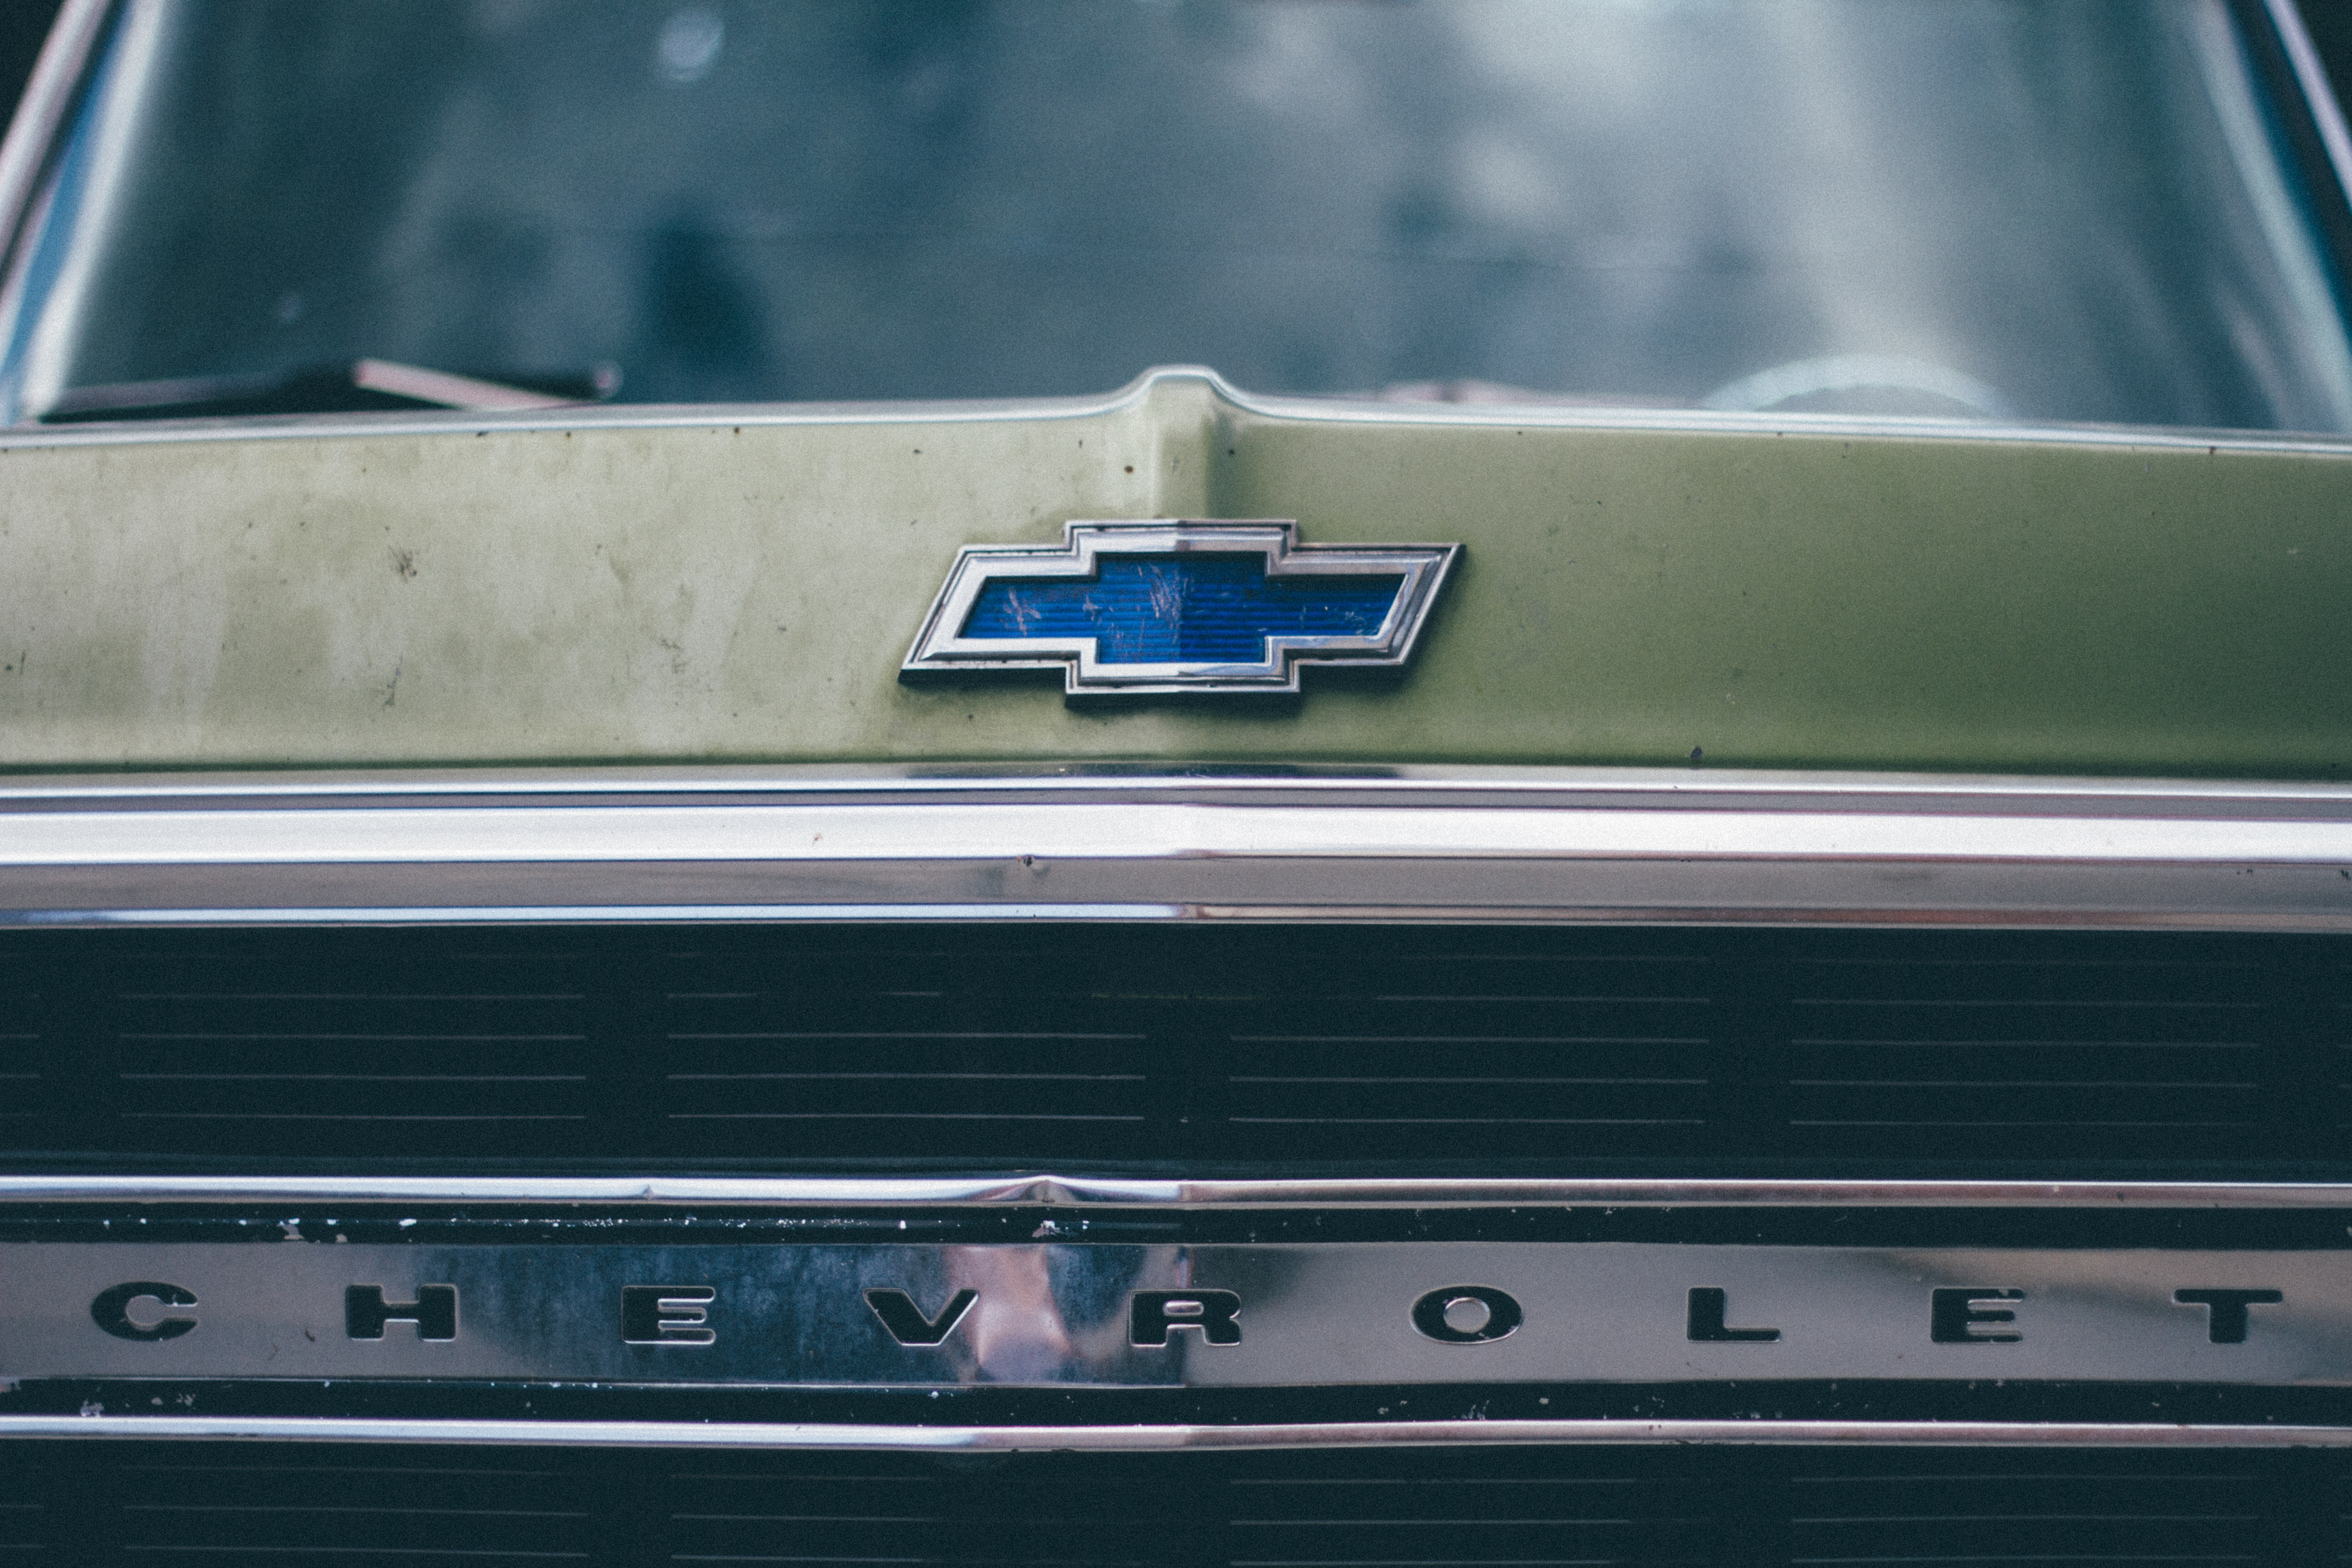 Macro shot of a vintage Chevrolet truck's grille and emblem.